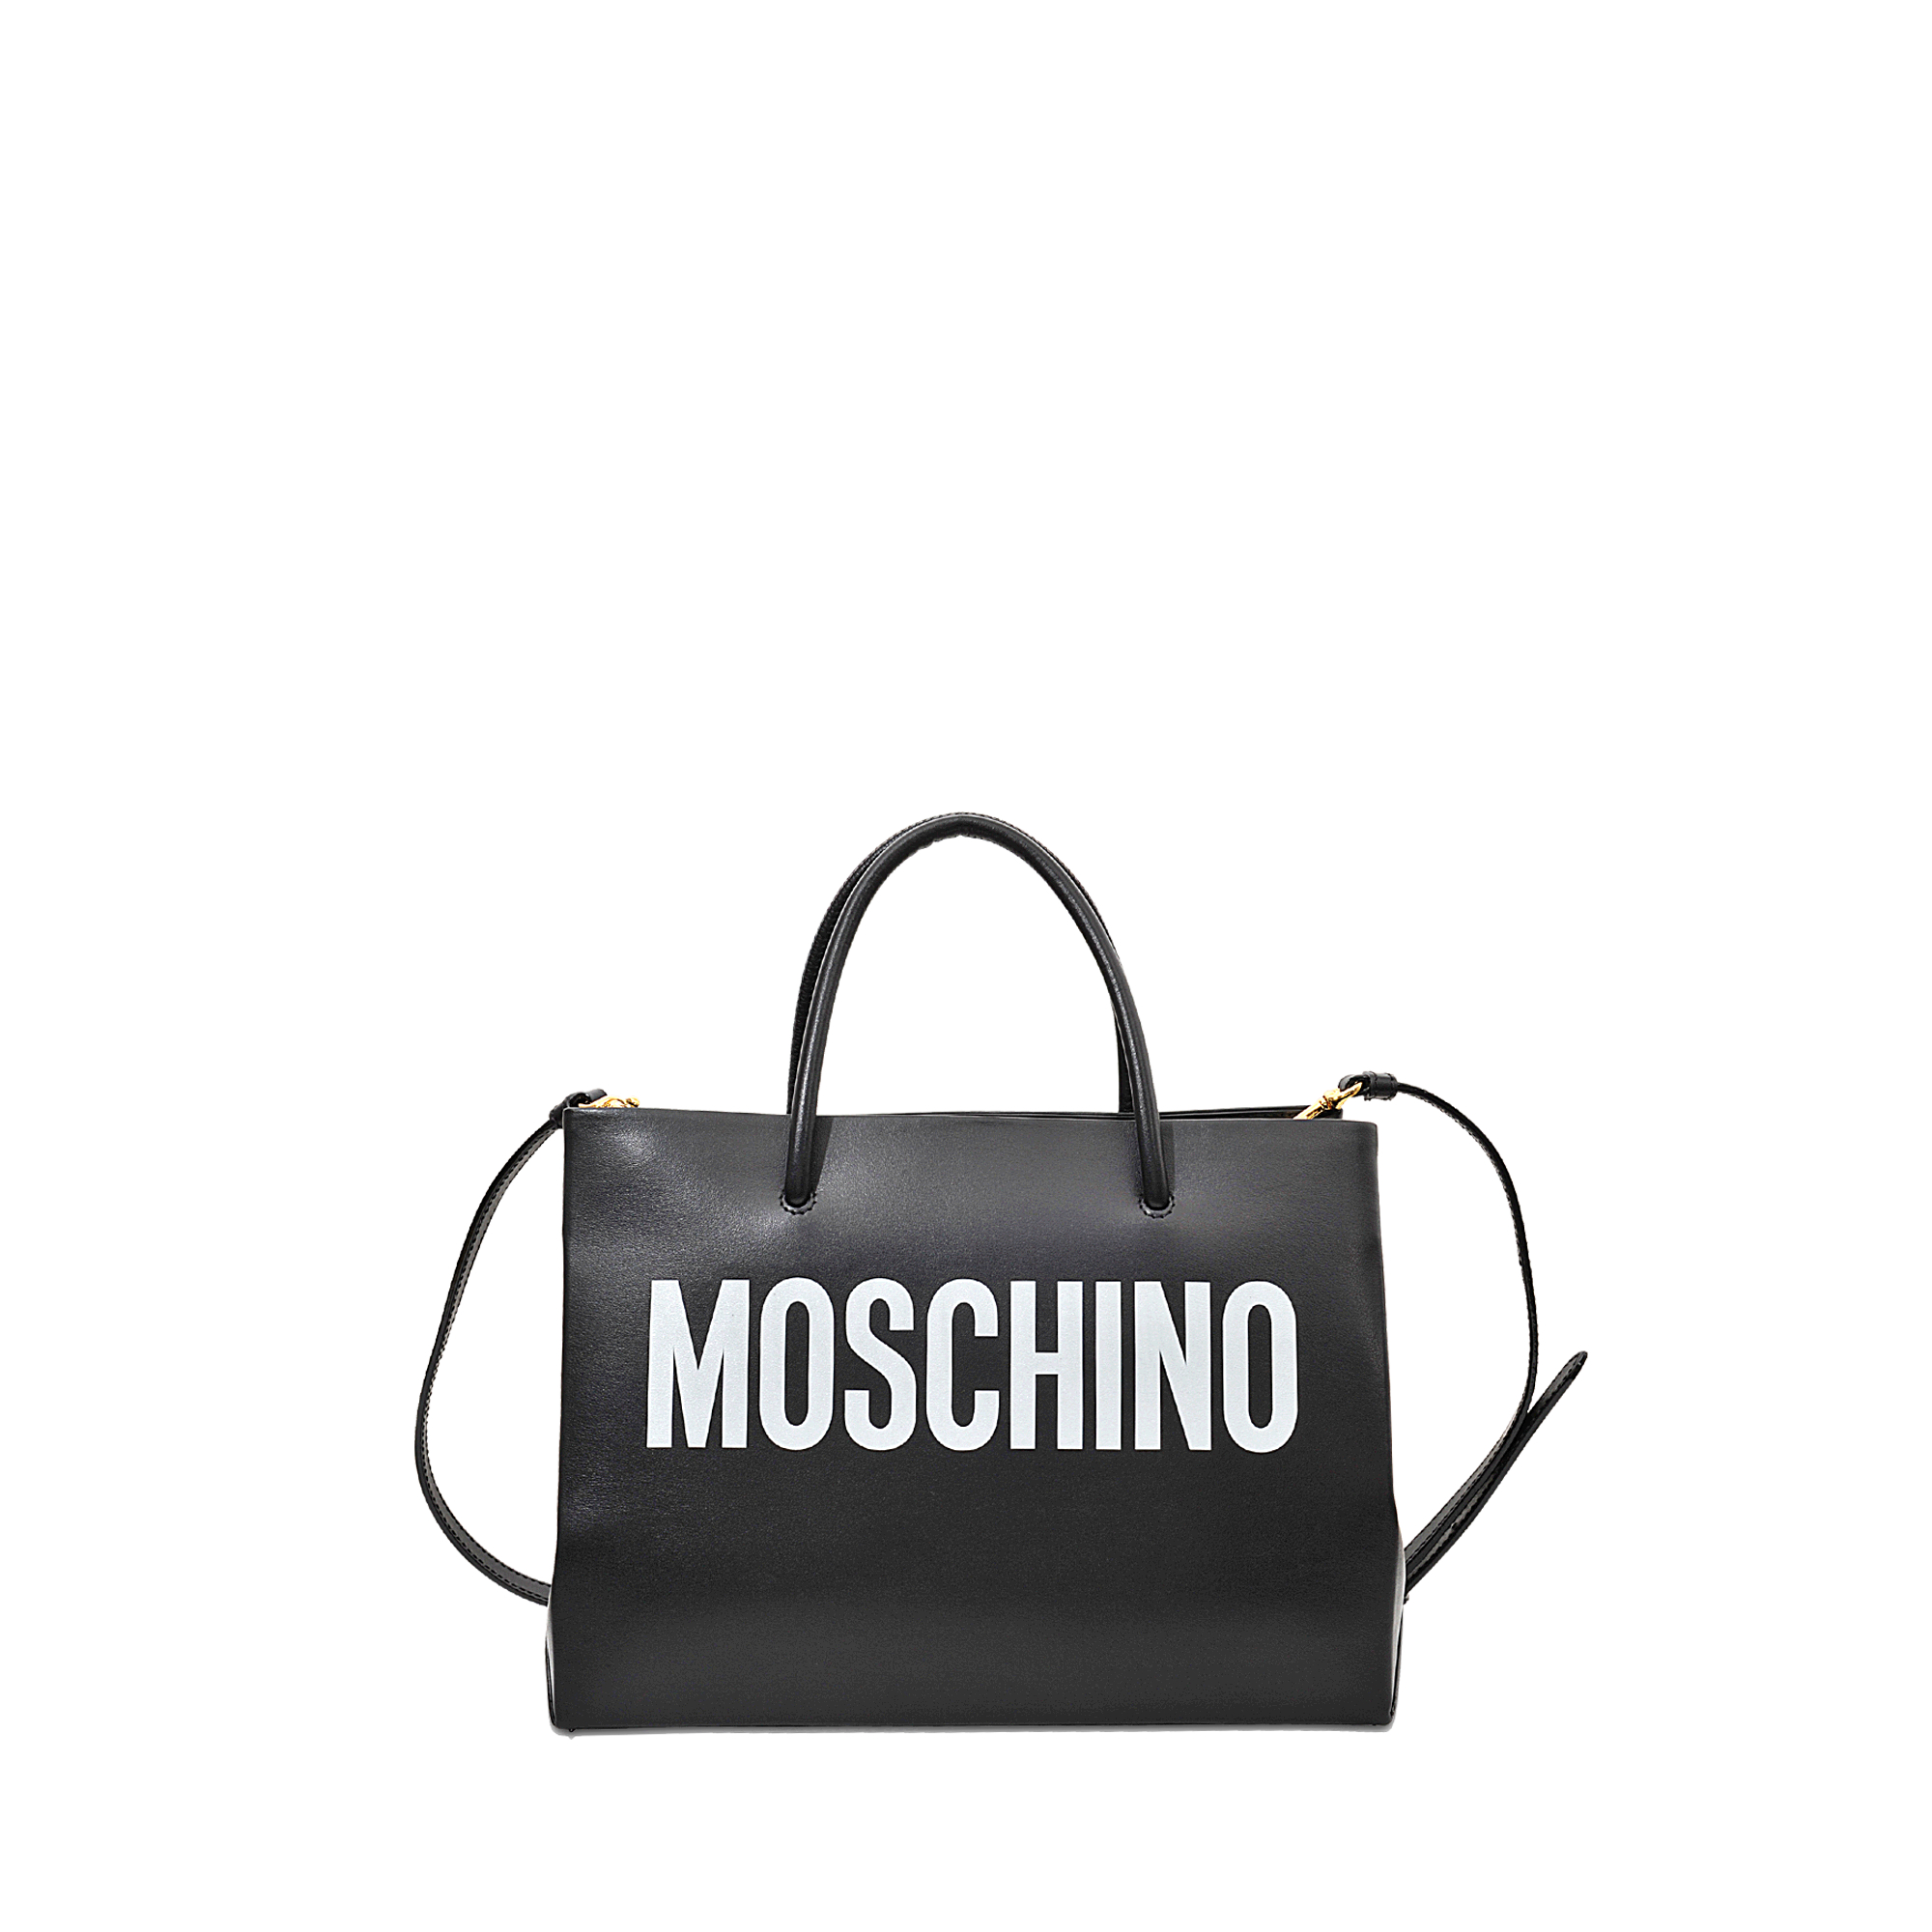 Moschino Small Shopping Bag in Black | Lyst